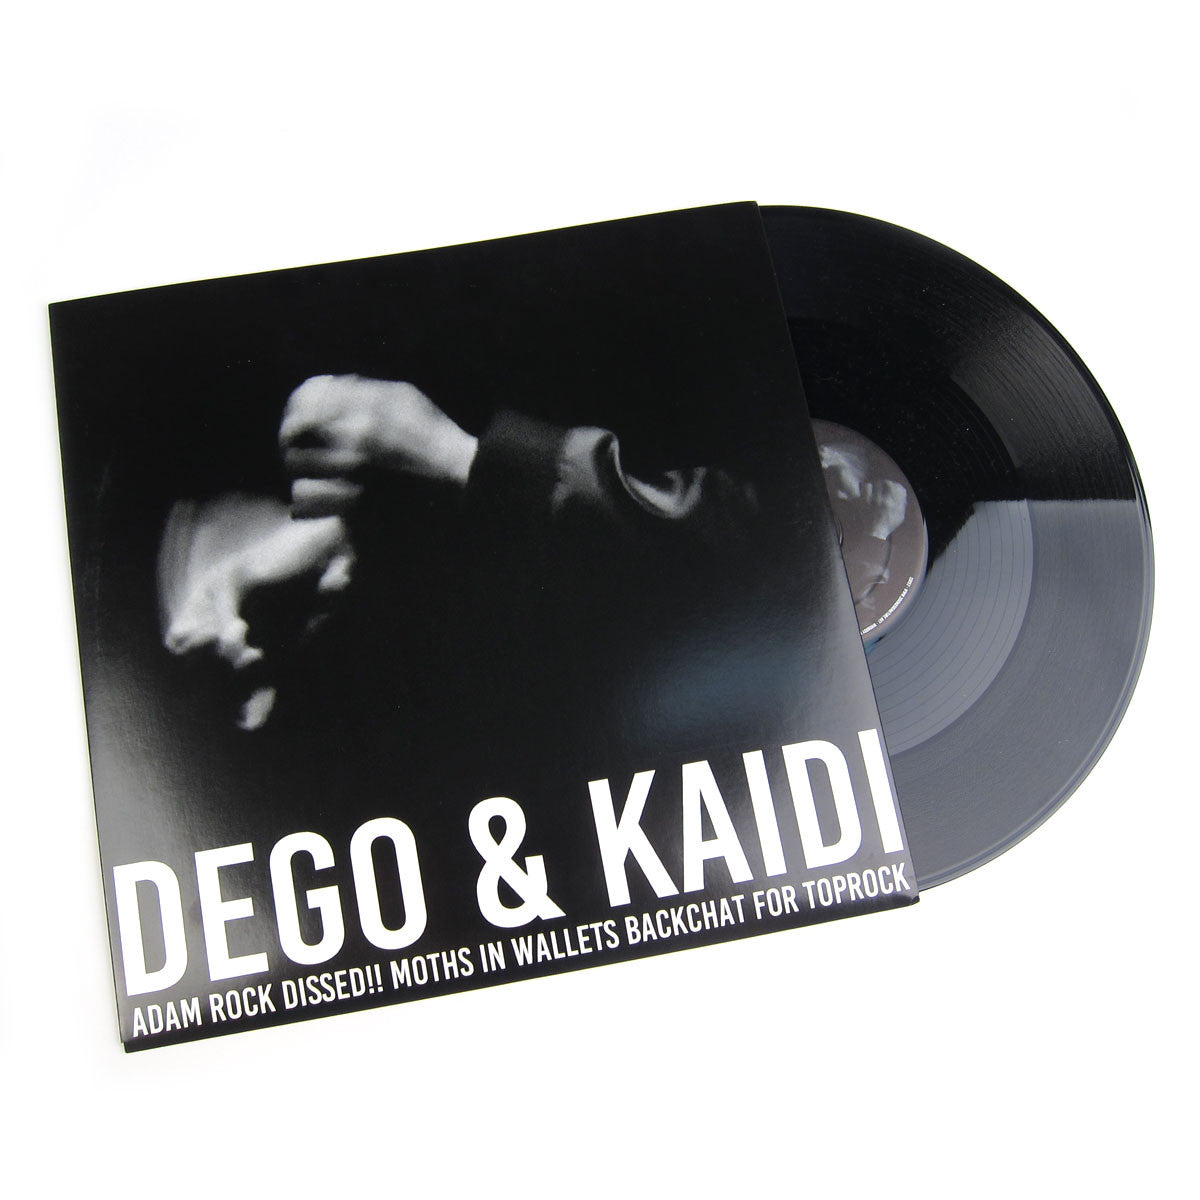 Dego & Kaidi: Adam Rock Dissed!! (4 Hero, Bugz In The Attic) Vinyl 12""